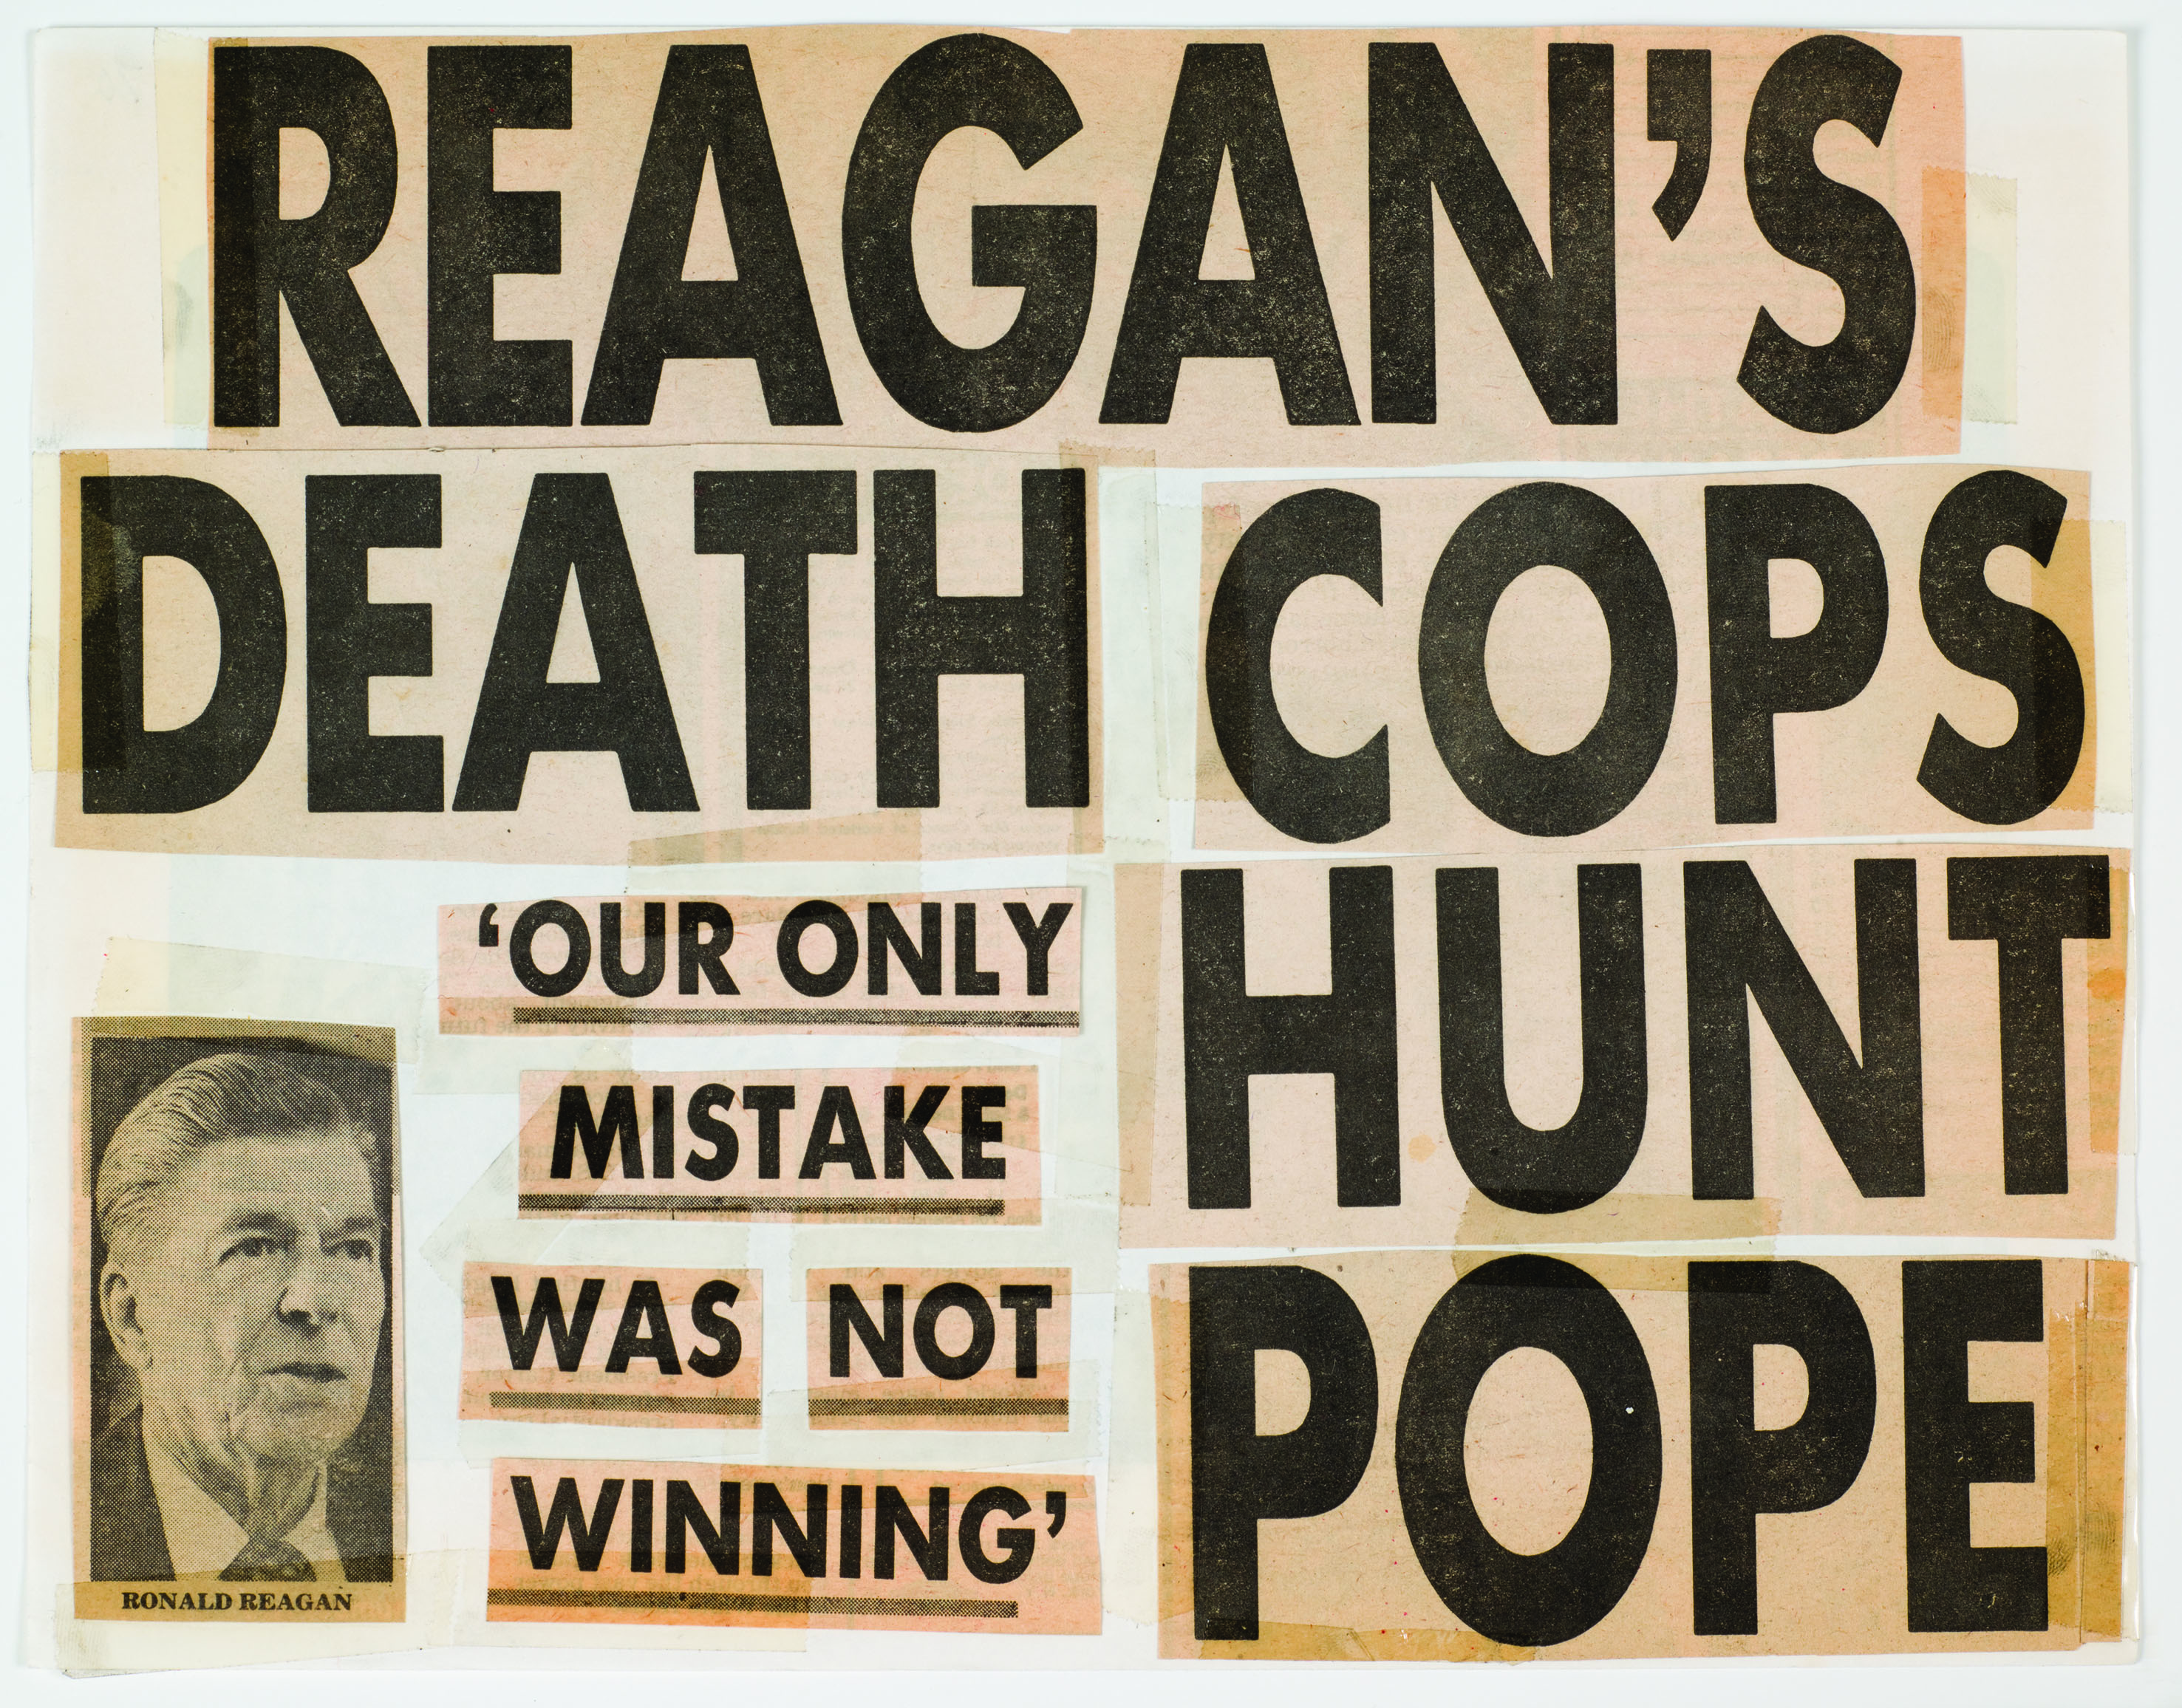 Keith Haring, Reagan's Death Cops Hunt Pope, 1980